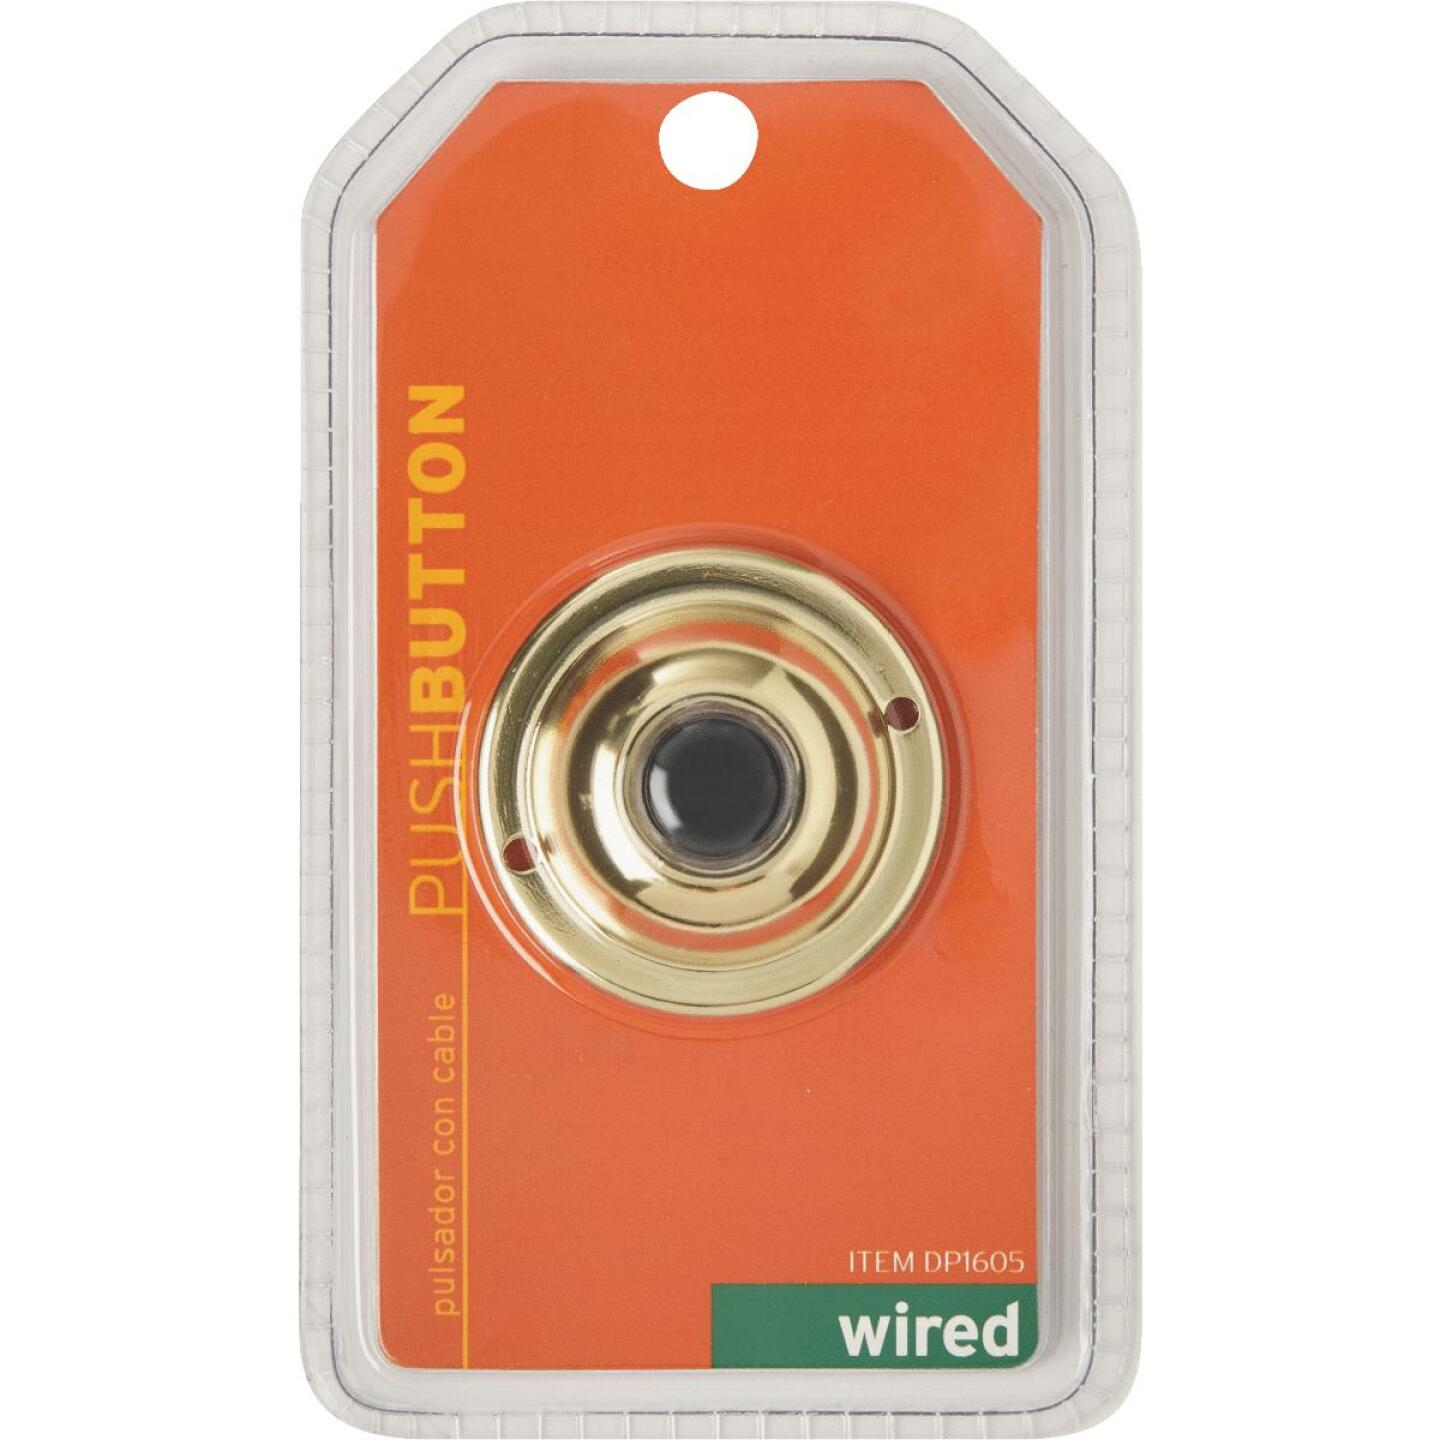 IQ America Wired Brass Classic Doorbell Push-Button Image 2